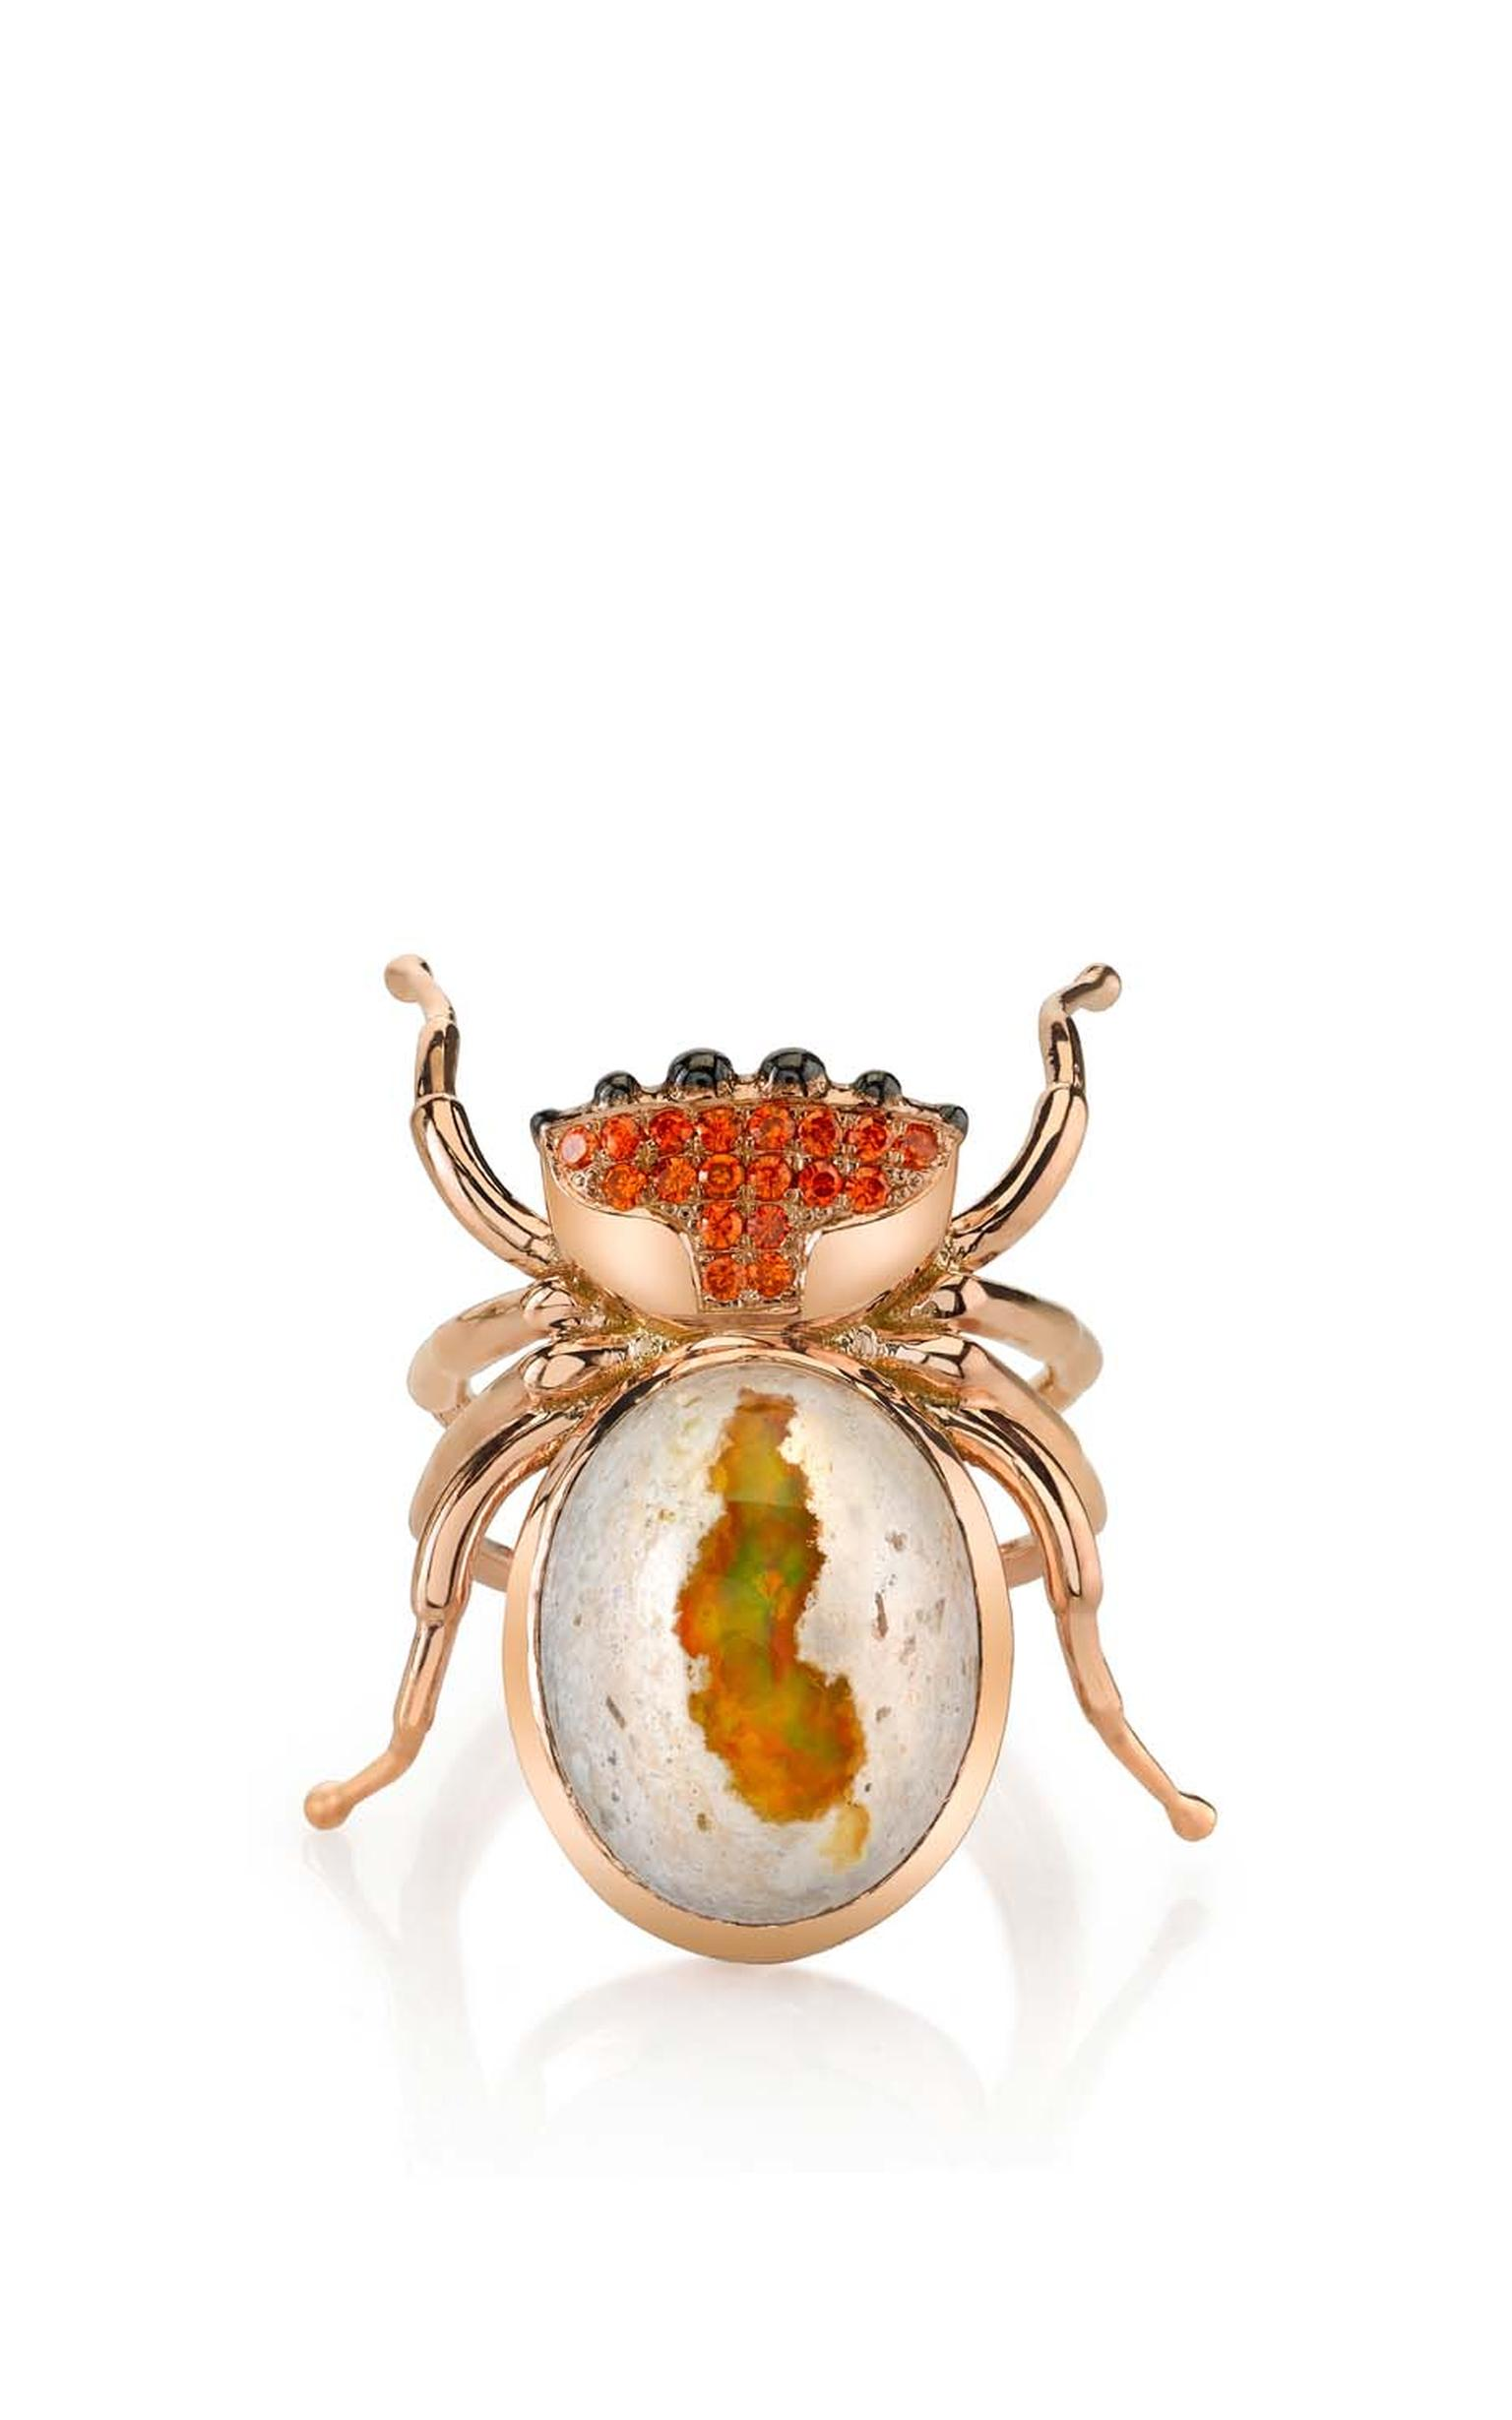 Daniela Villegas rose gold Spider ring with spessartite garnet and Mexican opal.